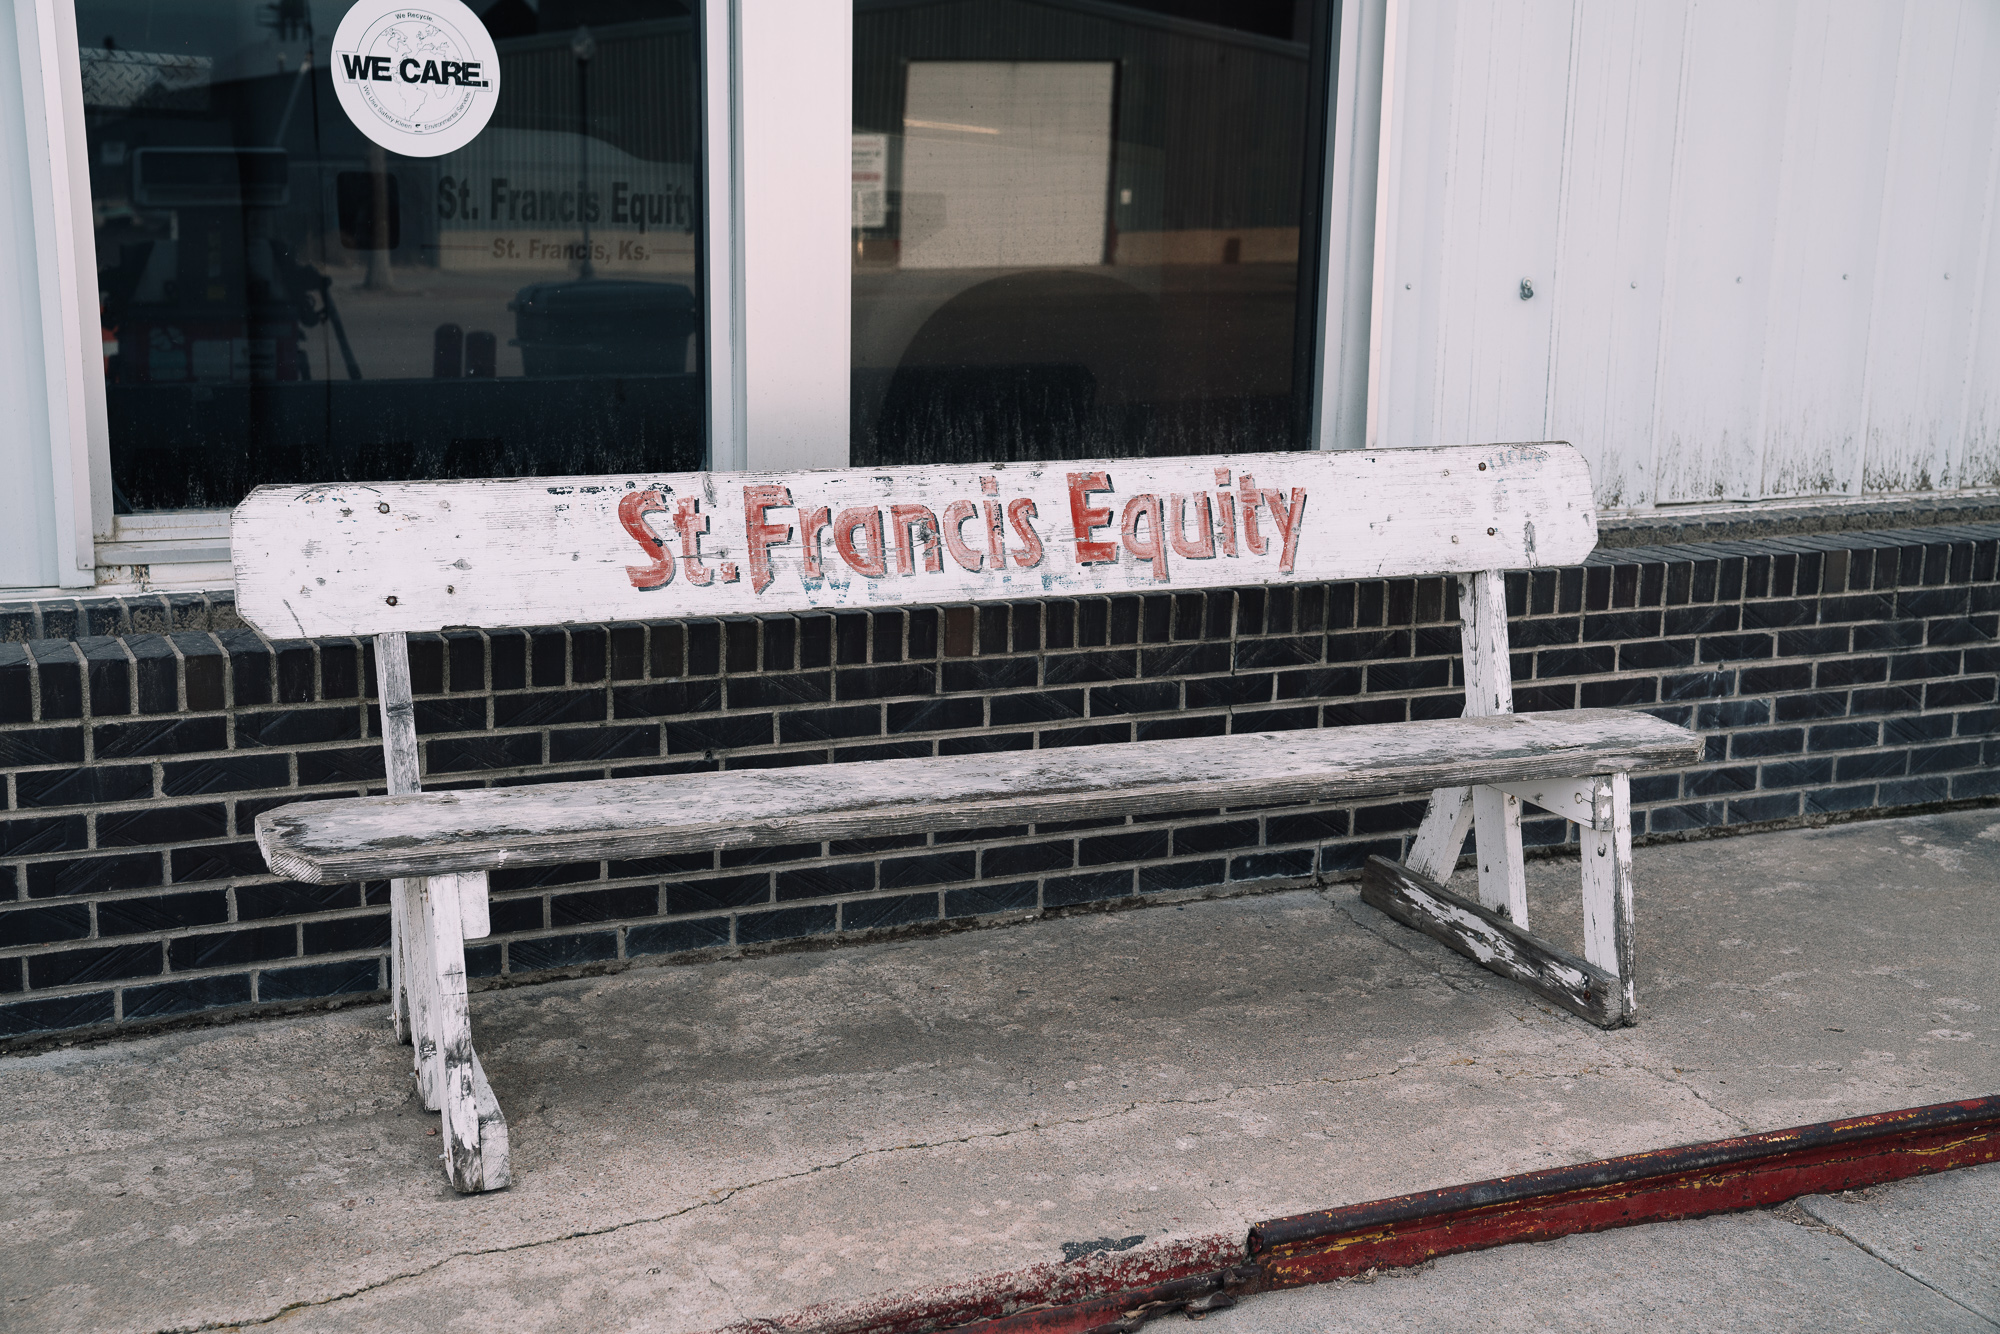 white bench with St. Francis written on it